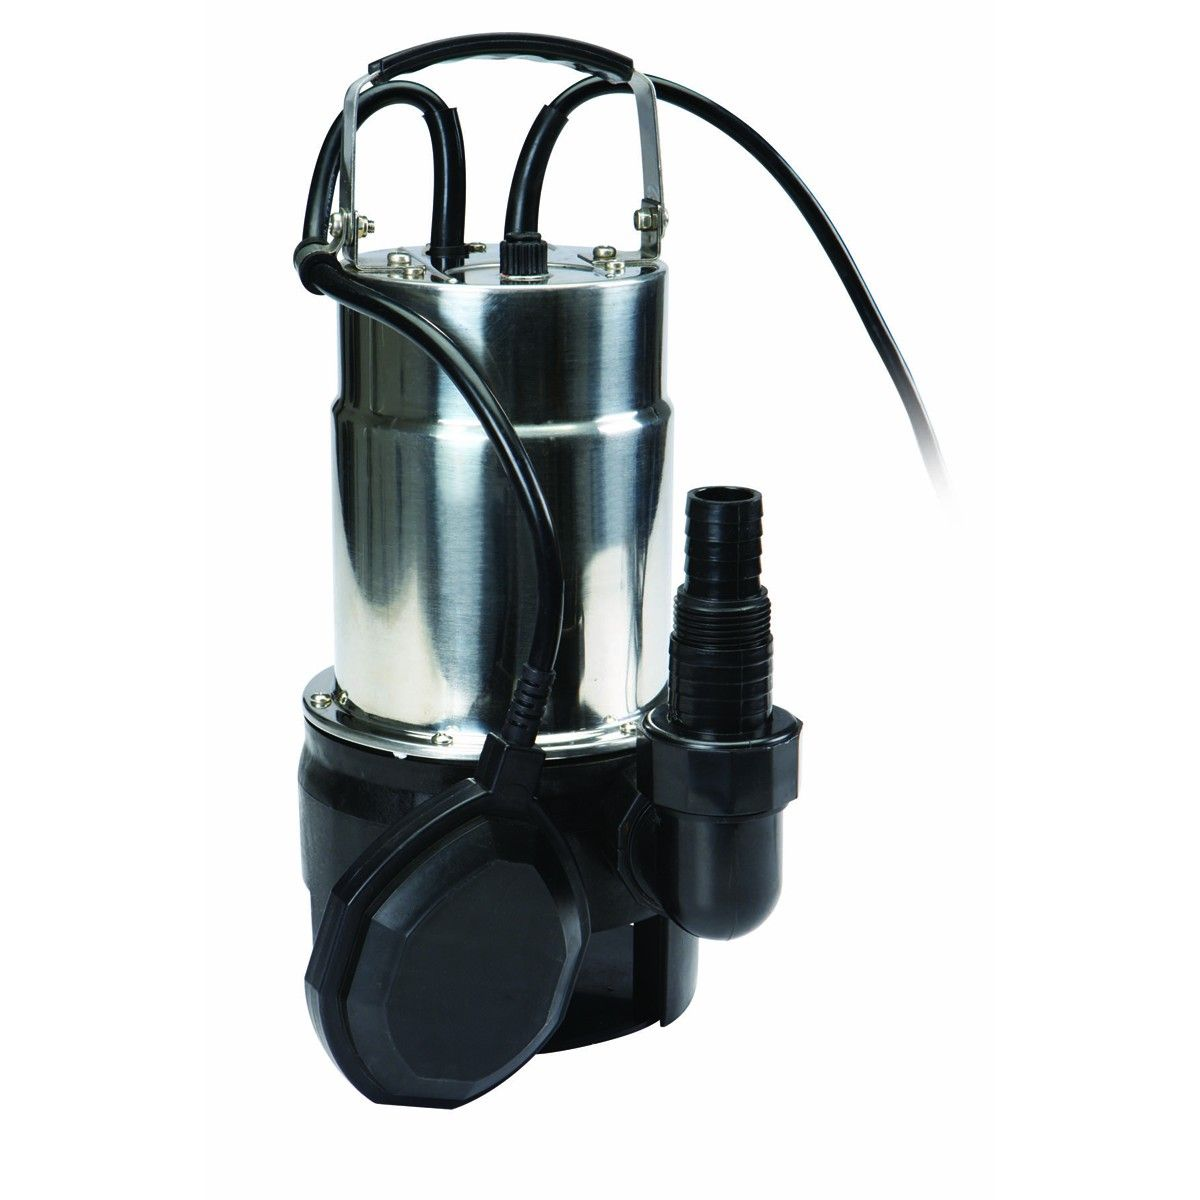 Pacific Hydrostar 69299 3/4 Horsepower Submersible Dirty Water Pump with Float Switch  $54.99